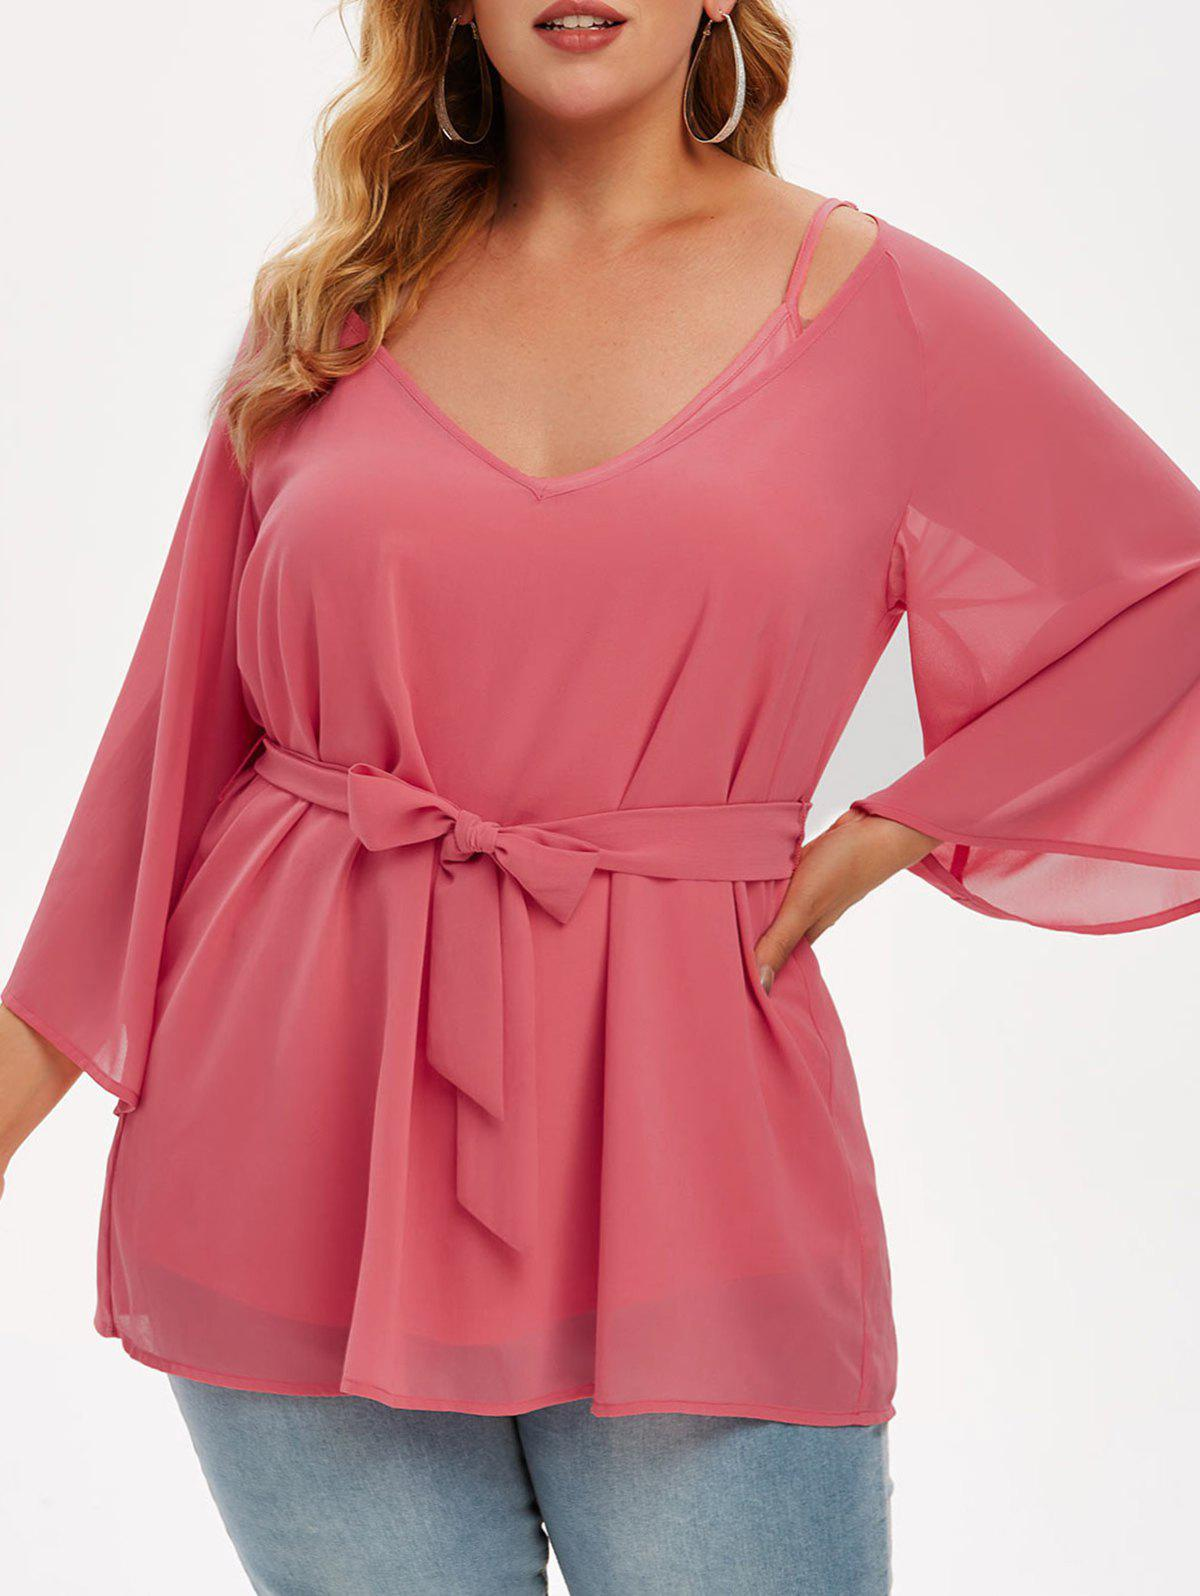 Plus Size Solid Cami Top And Chiffon Belted Blouse Set - LIGHT PINK L